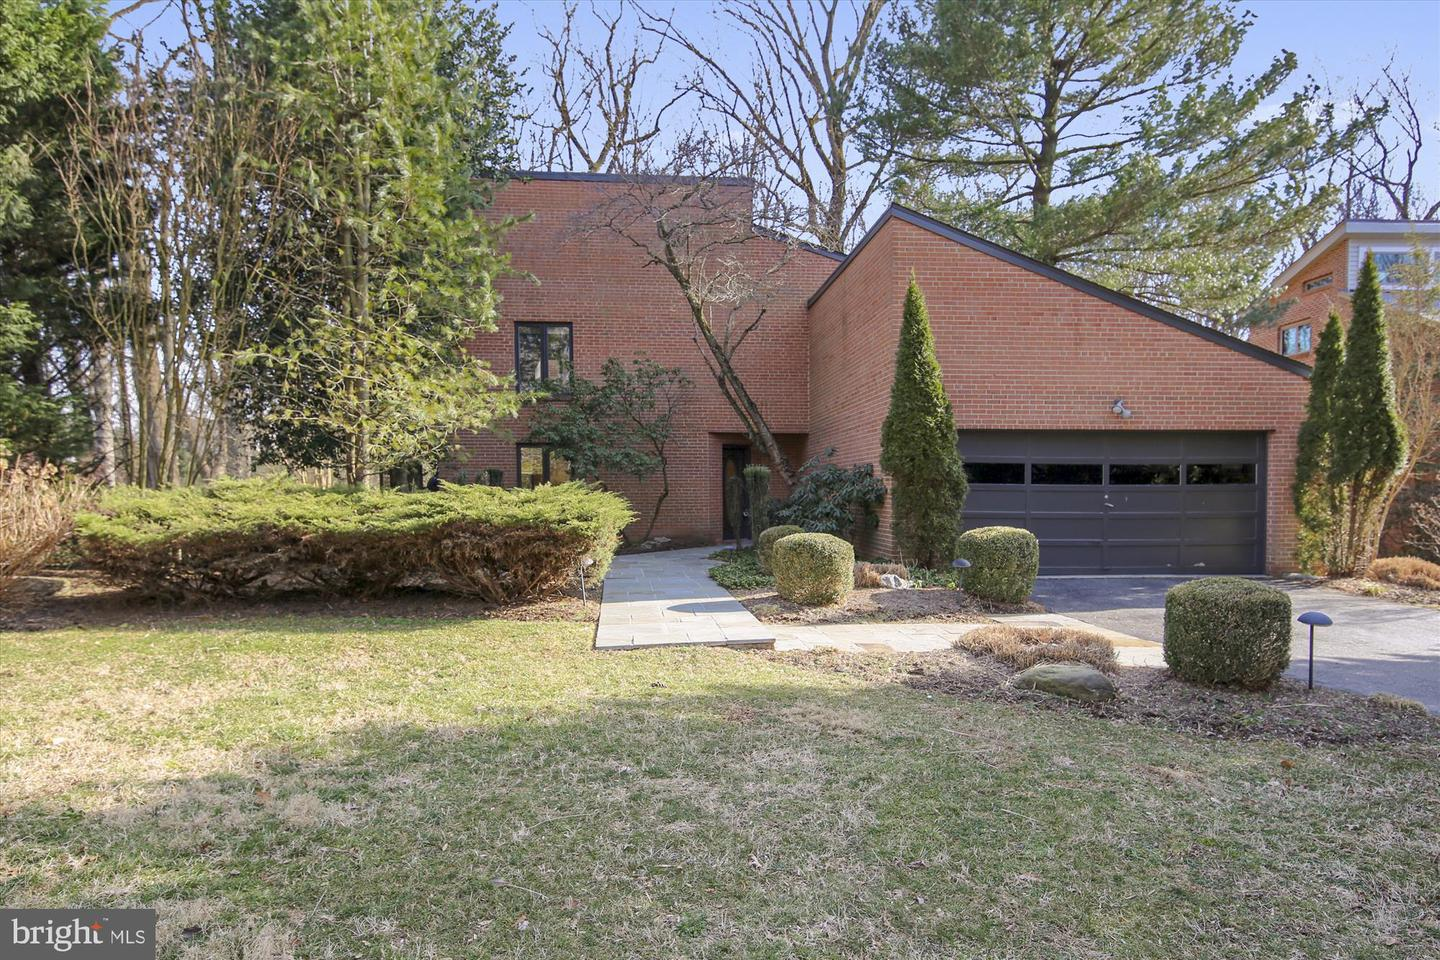 7212 GRUBBY THICKET WAY, BETHESDA, Maryland